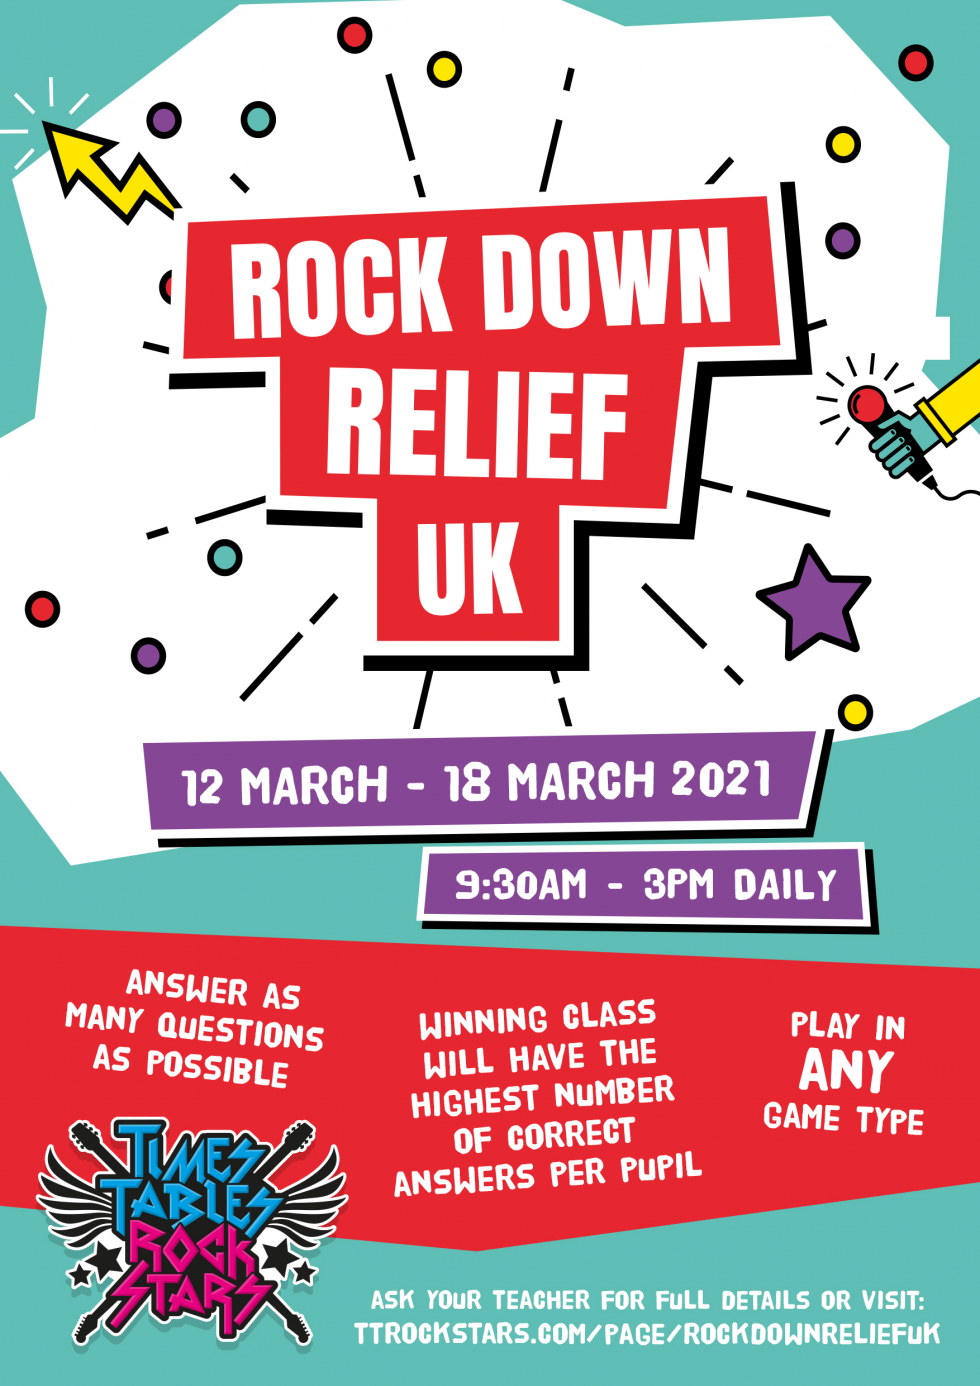 Download your Rock Down Relief UK Poster now.